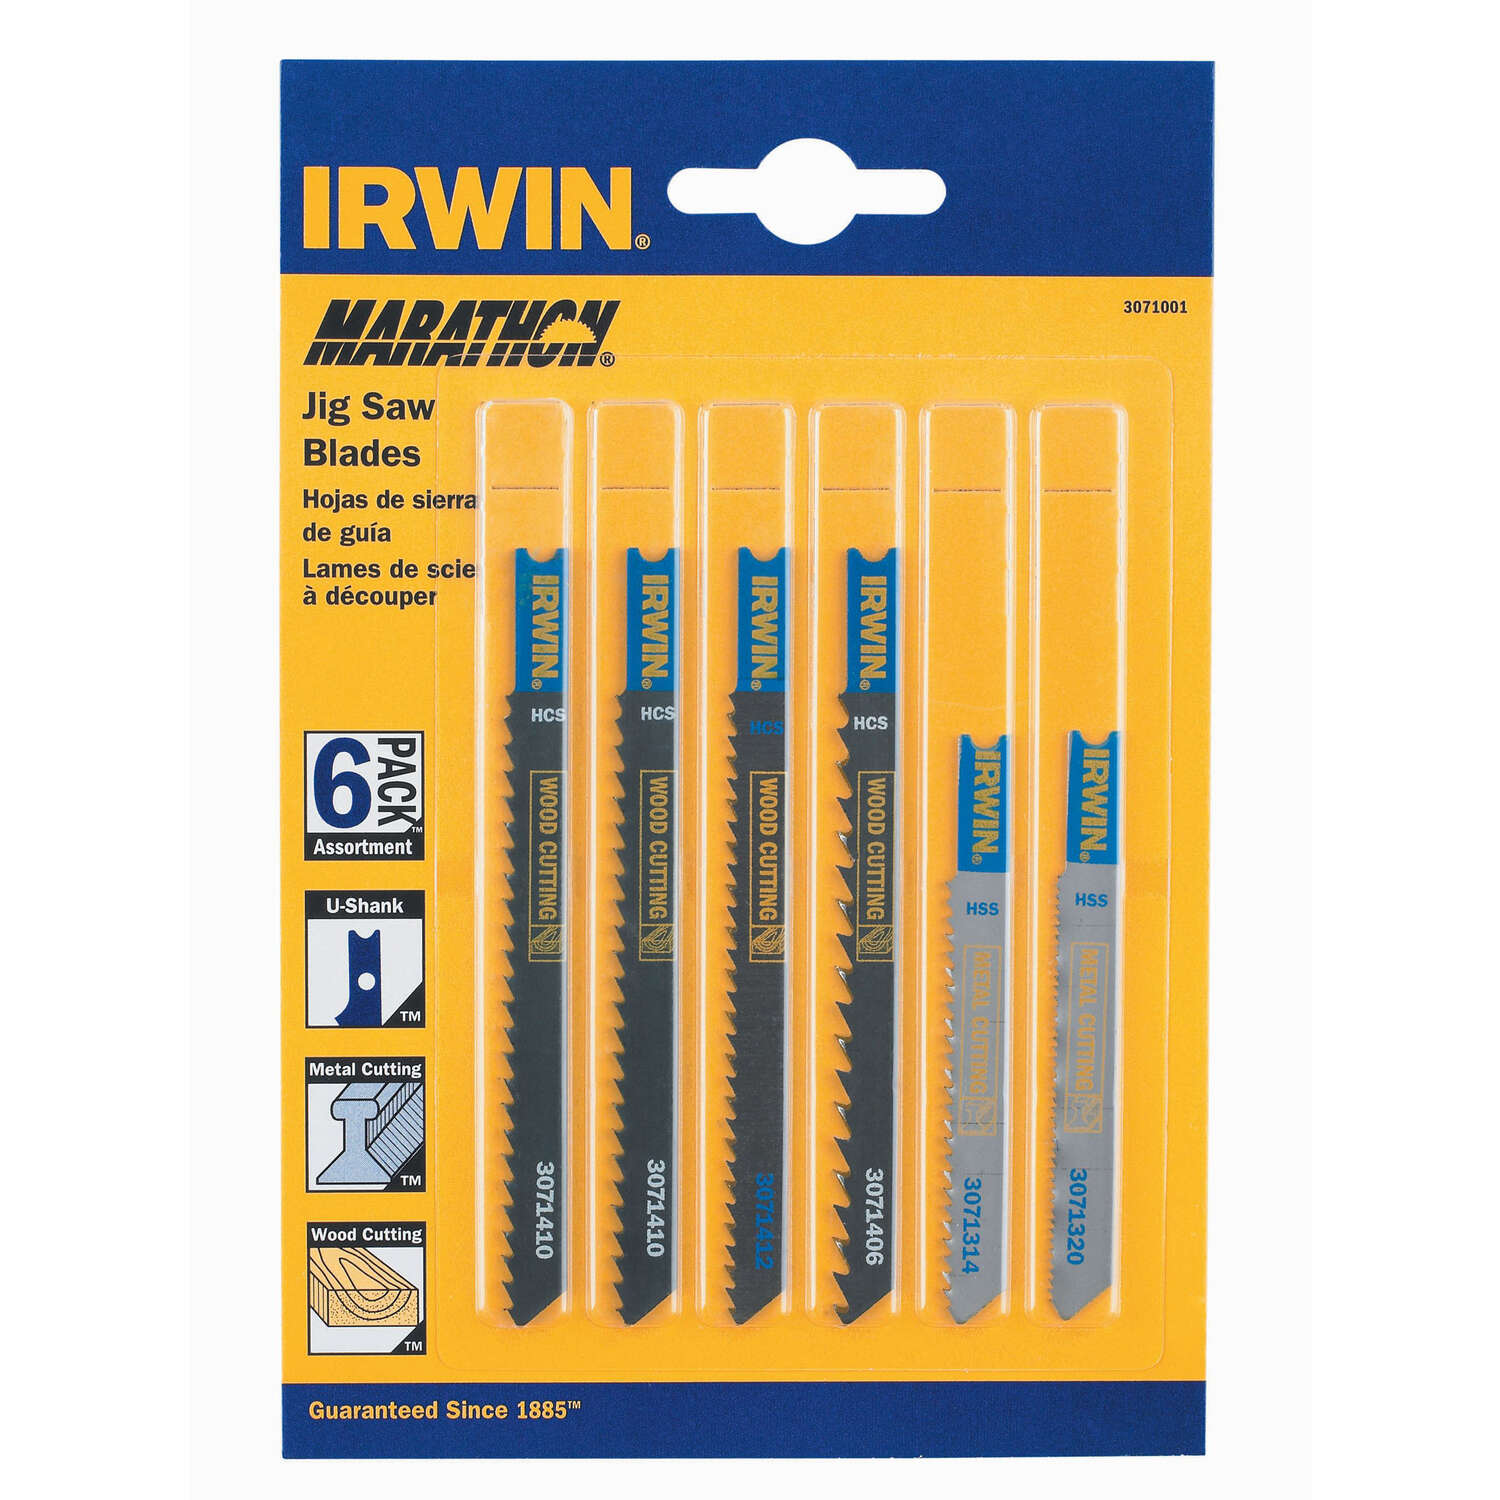 Irwin  Marathon  4 in. Carbon Steel  U-Shank  Jig Saw Blade Set  Assorted TPI 6 pk